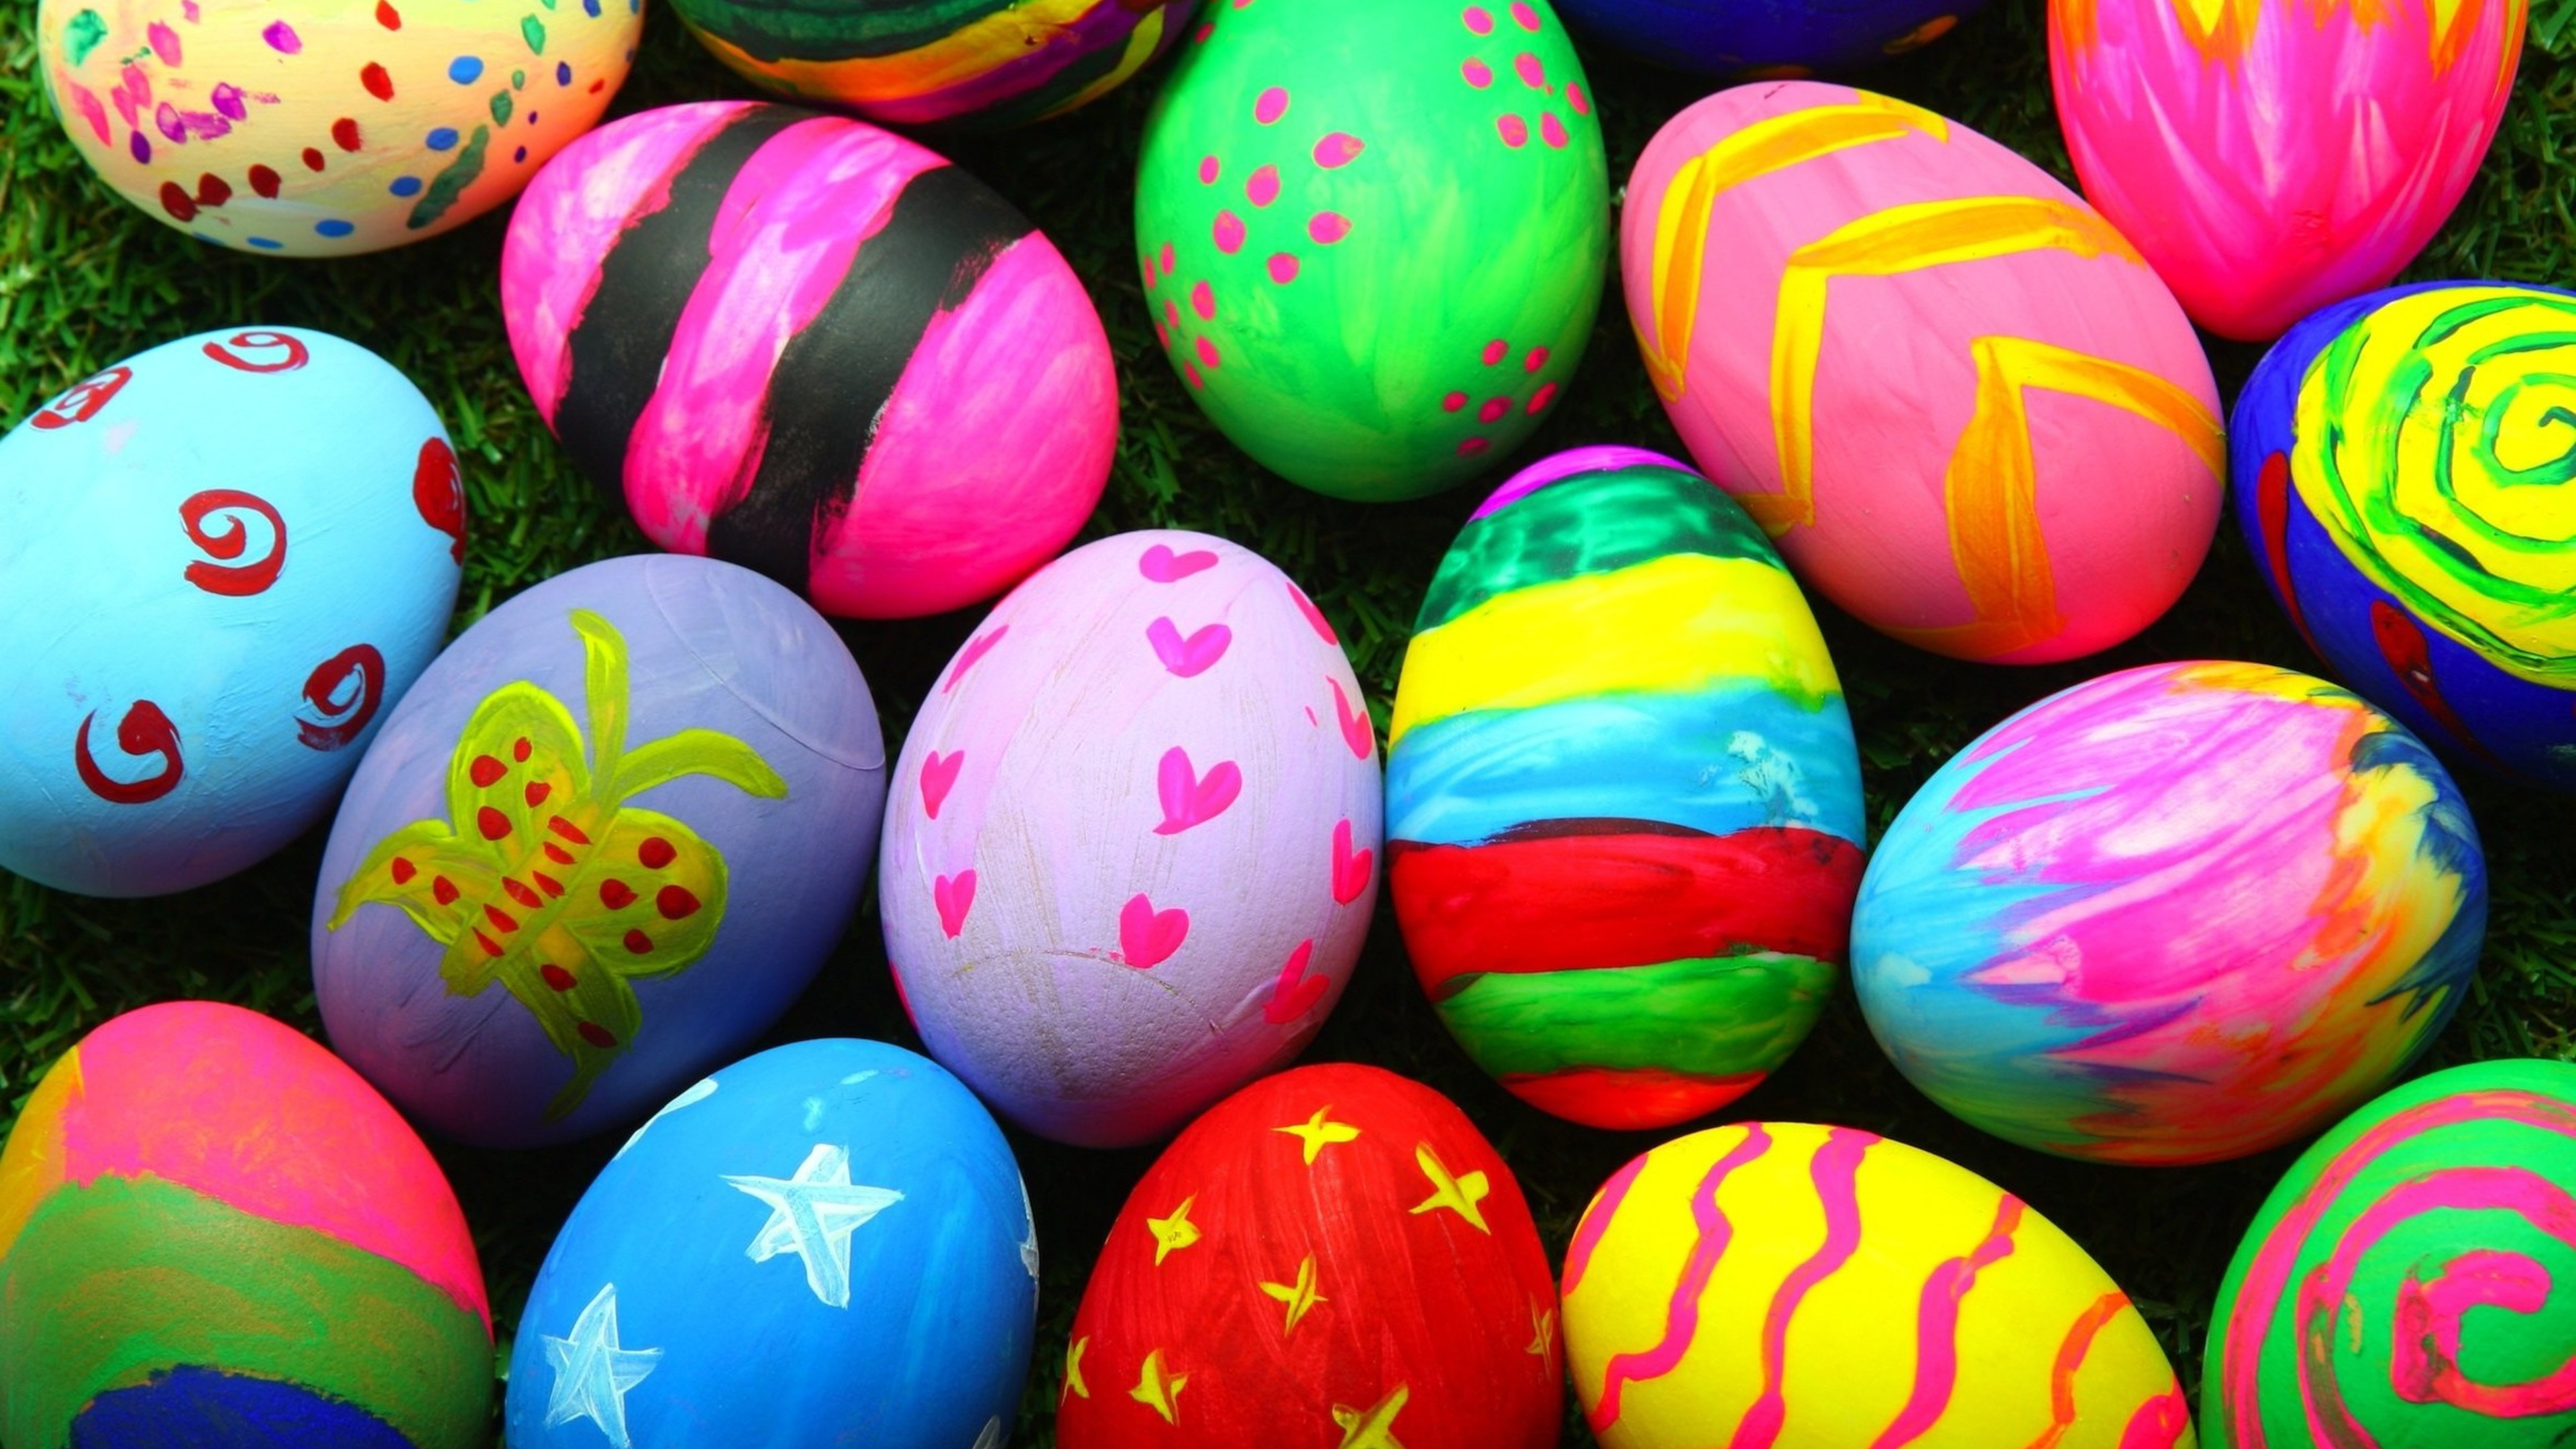 colorful easter eggs 4k 1543946397 - Colorful Easter Eggs 4k - eggs wallpapers, easter wallpapers, colorful wallpapers, celebrations wallpapers